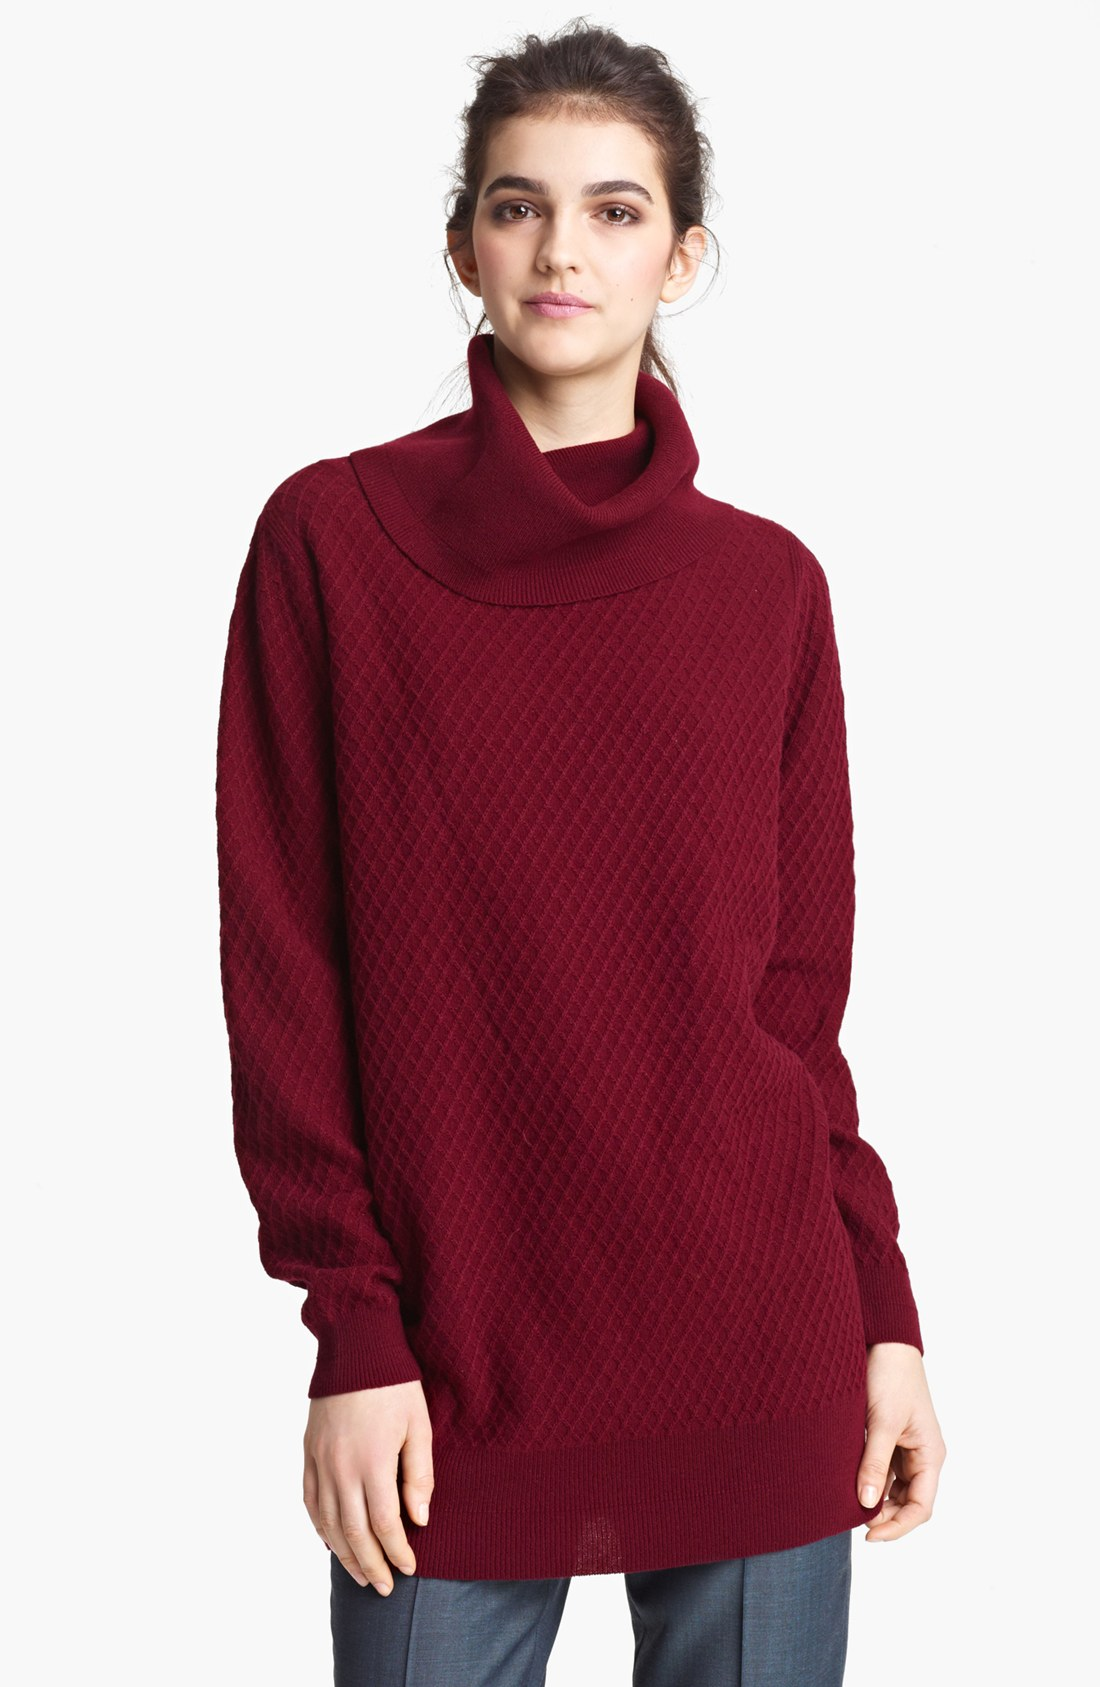 Marc jacobs Oversized Turtleneck Sweater in Red | Lyst